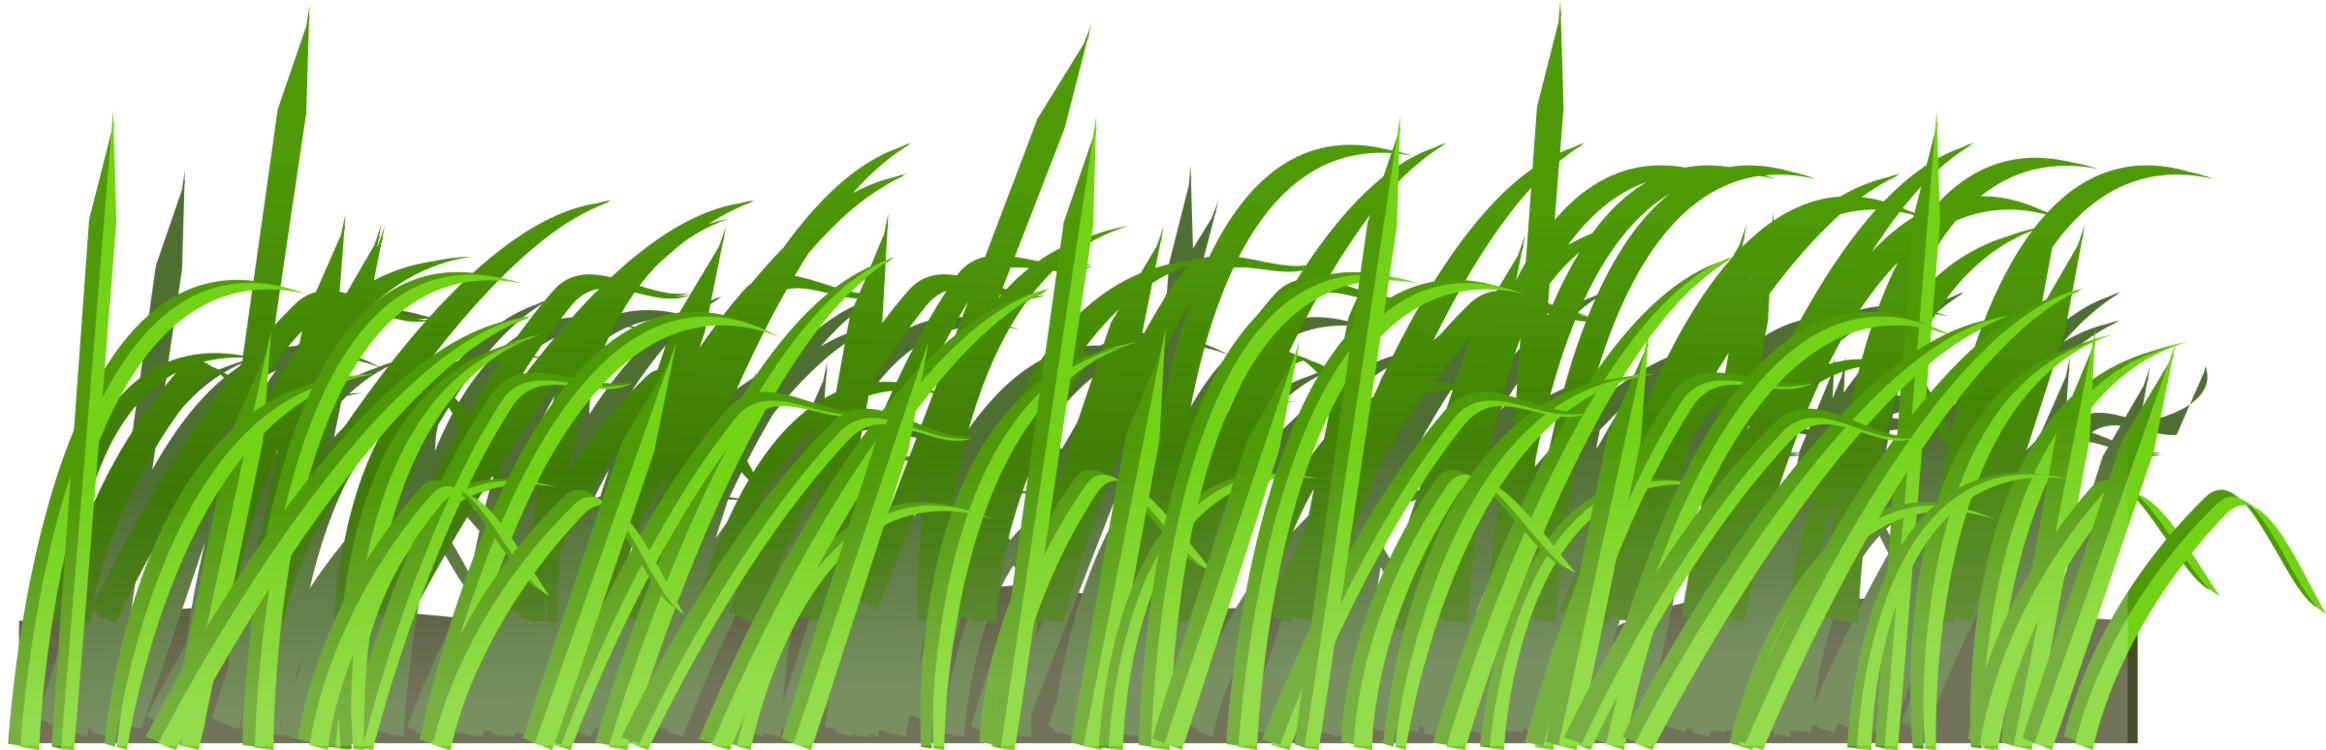 clip freeuse library Lawn mowers garden aeration. Yard clipart grass yard.